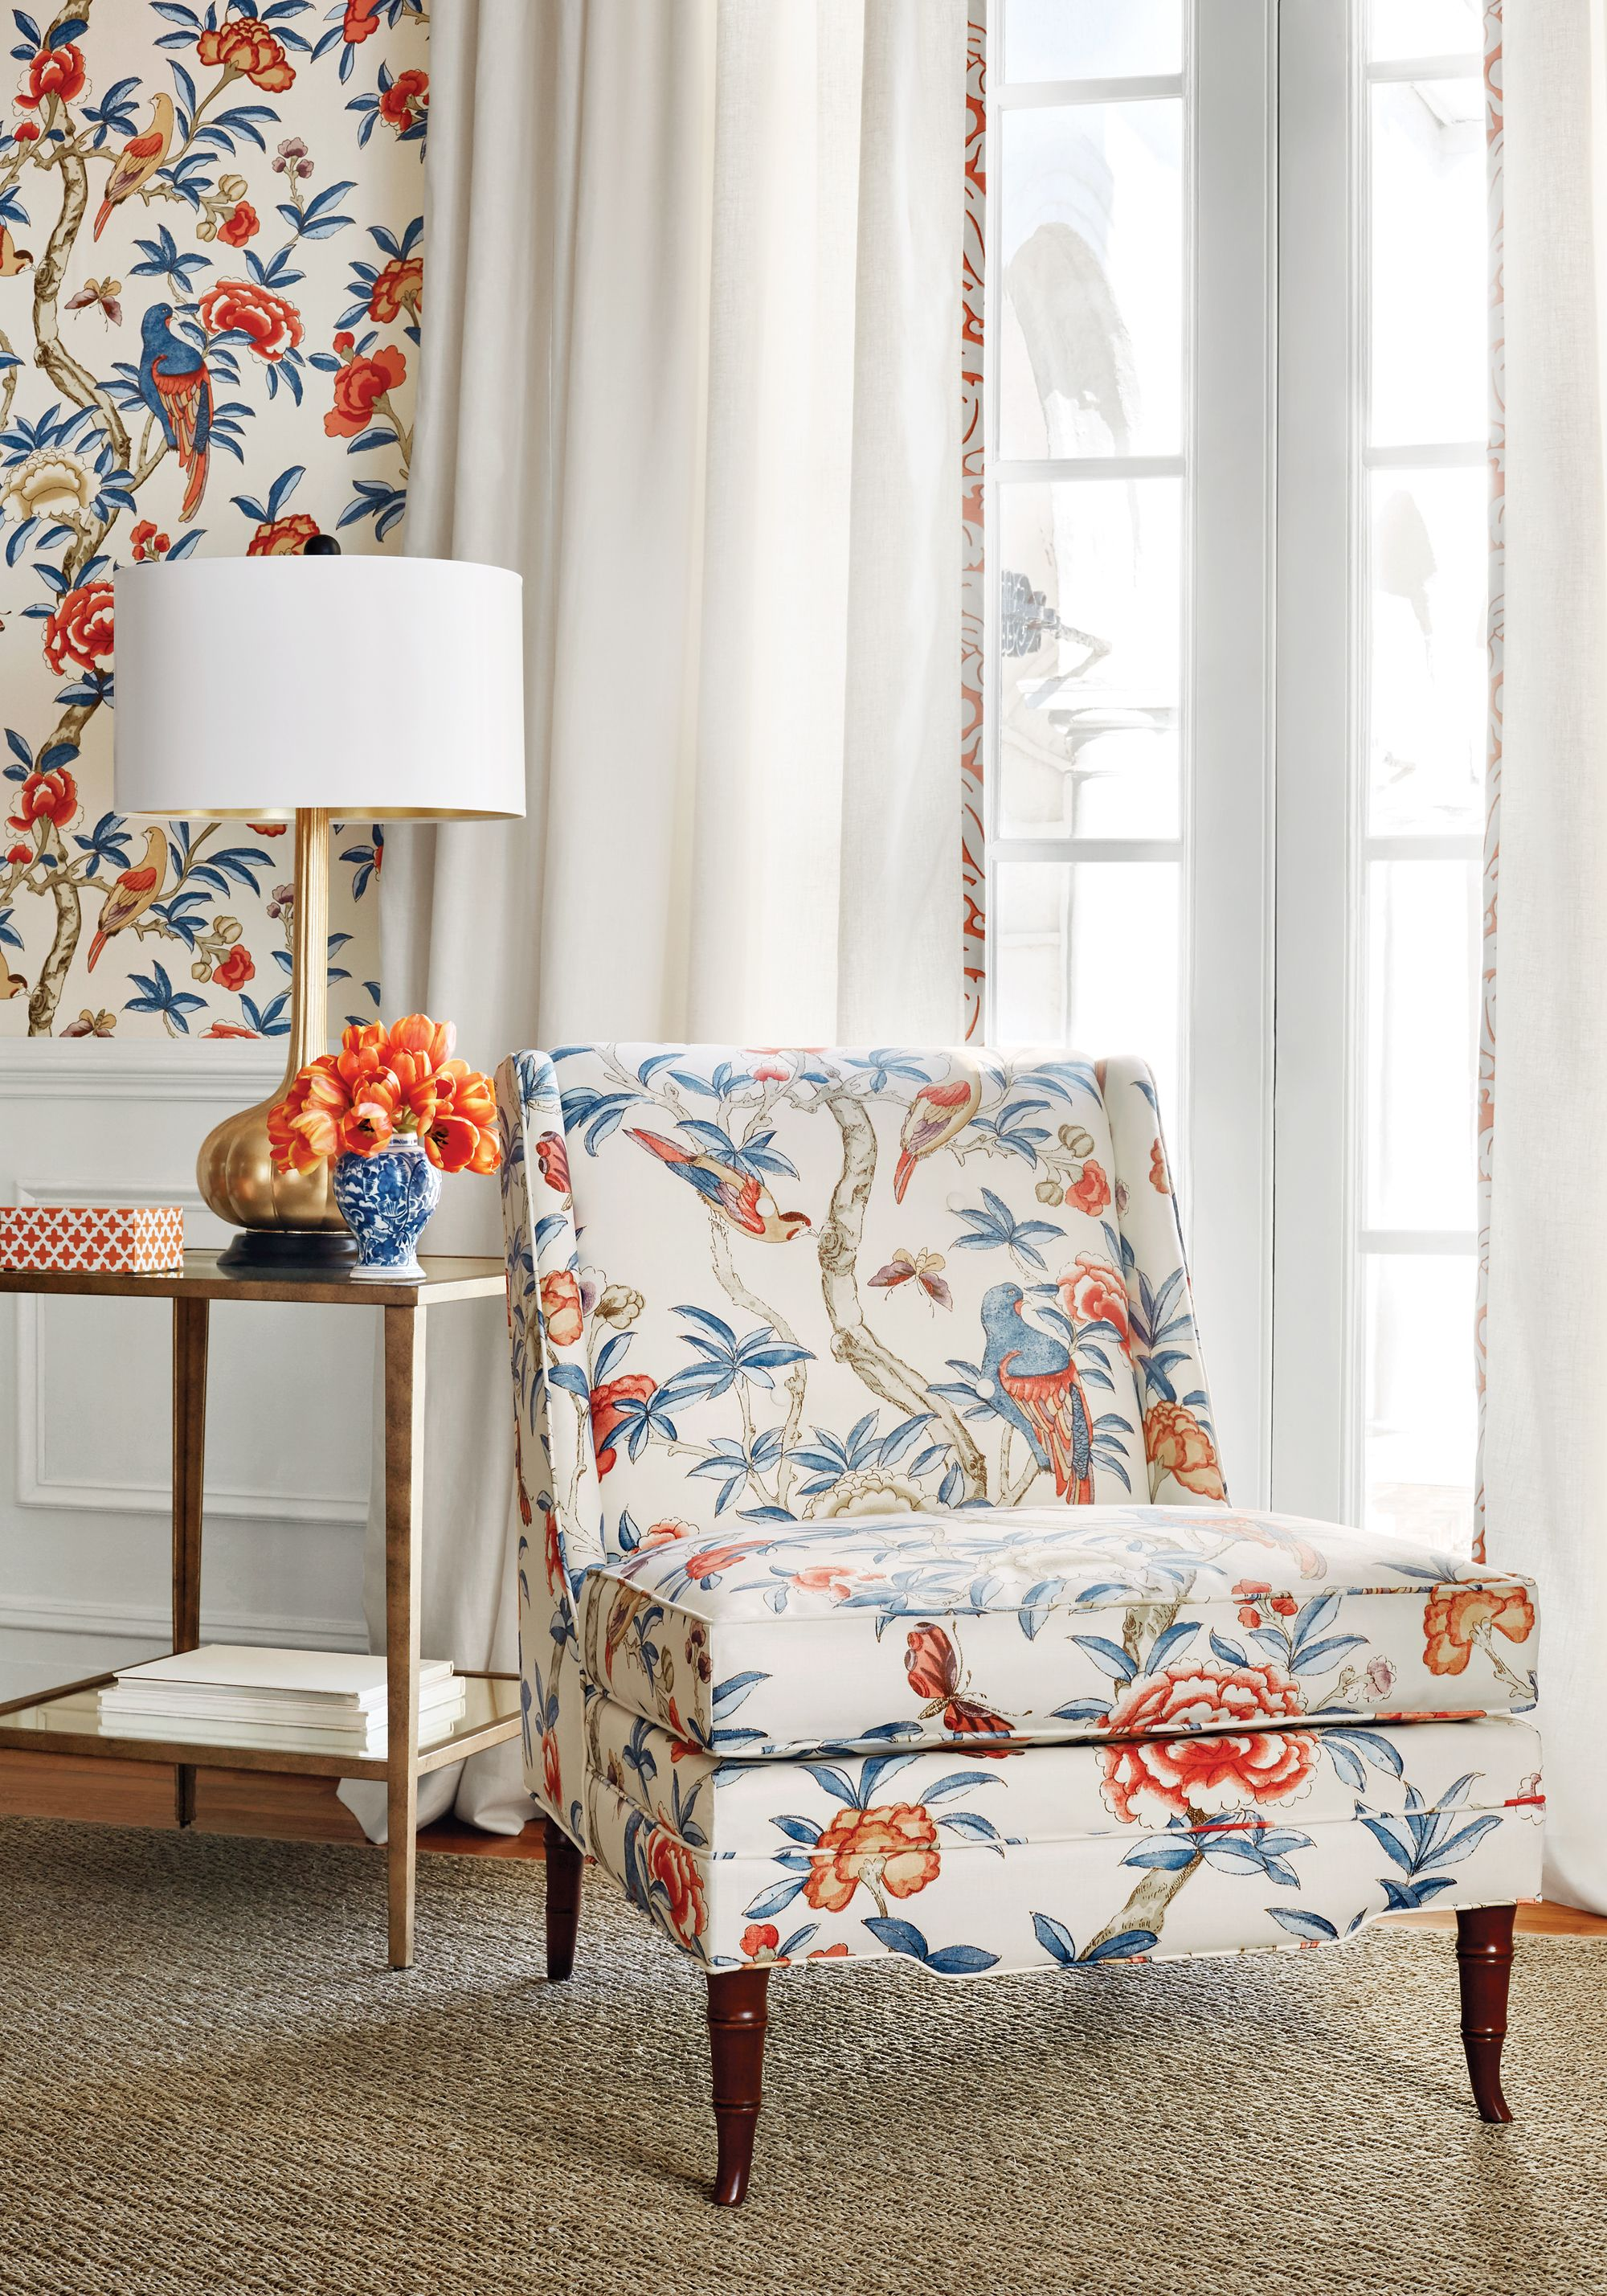 Bedford Chair From Thibaut Fine Furniture In Giselle